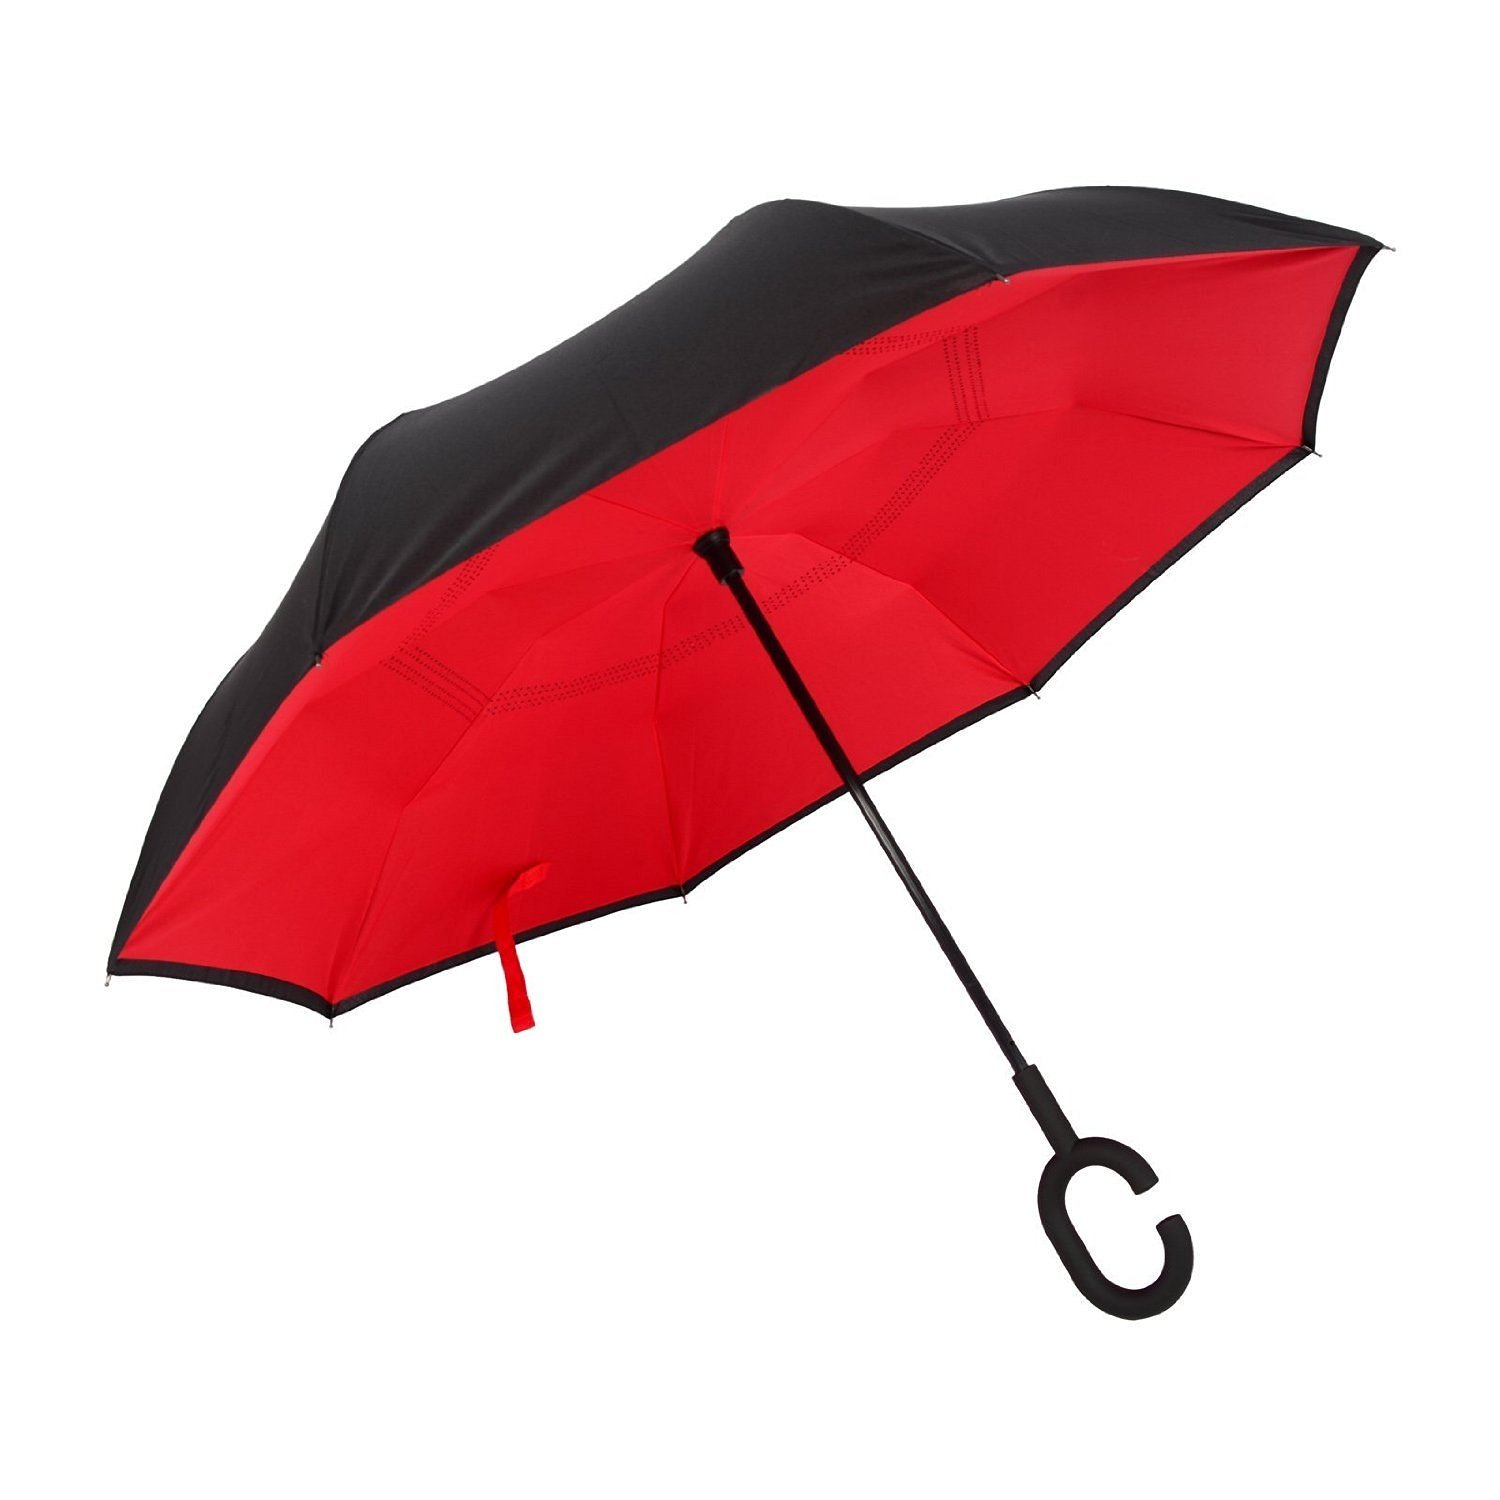 Dude Gadgets The Smart-Brella - World's First Fully Reversible Windproof Umbrella Astor & Royce